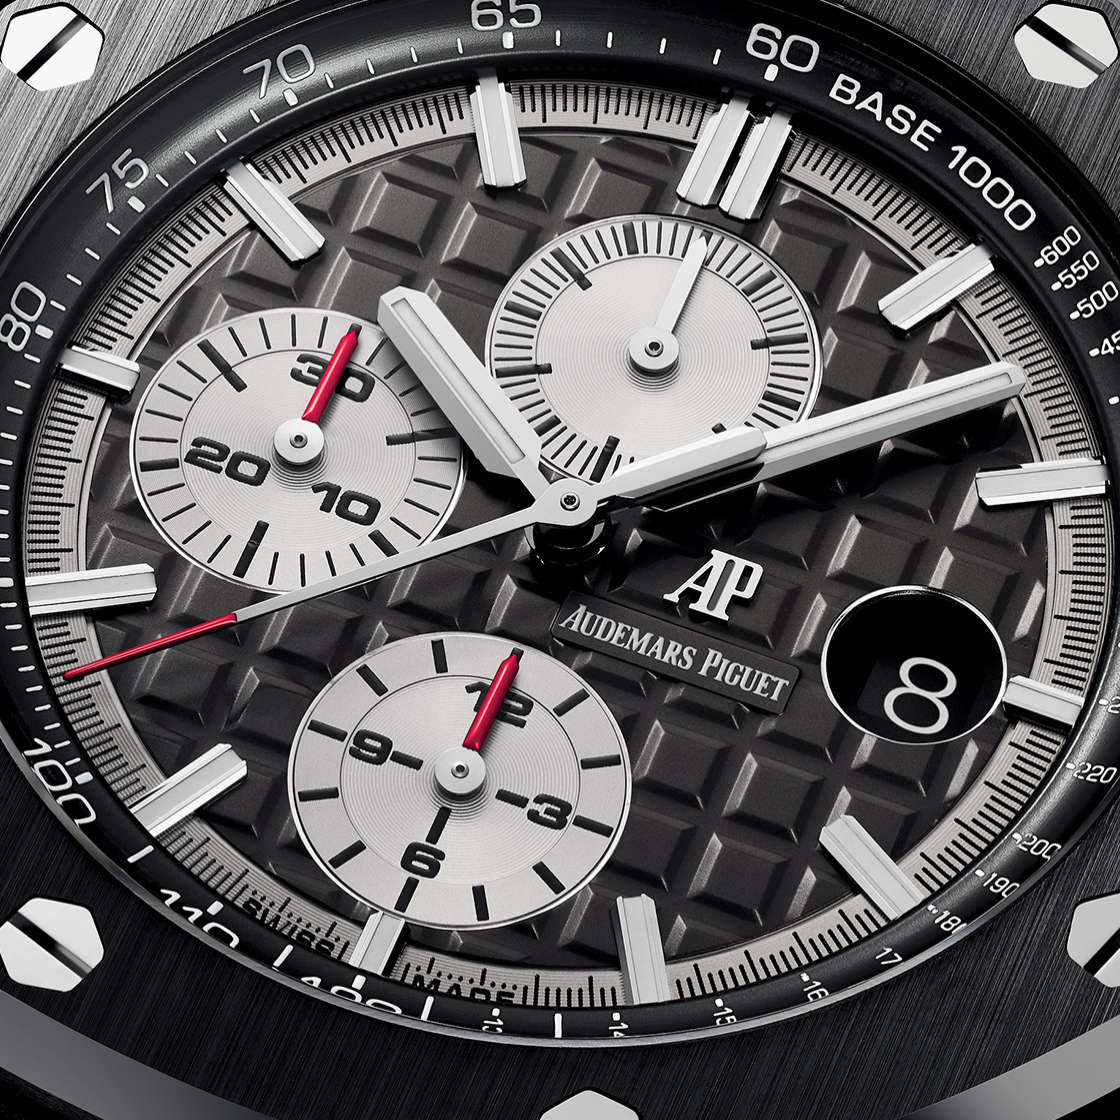 Audemars Piguet Royal Oak 44mm Offshore Chronograph Titanium